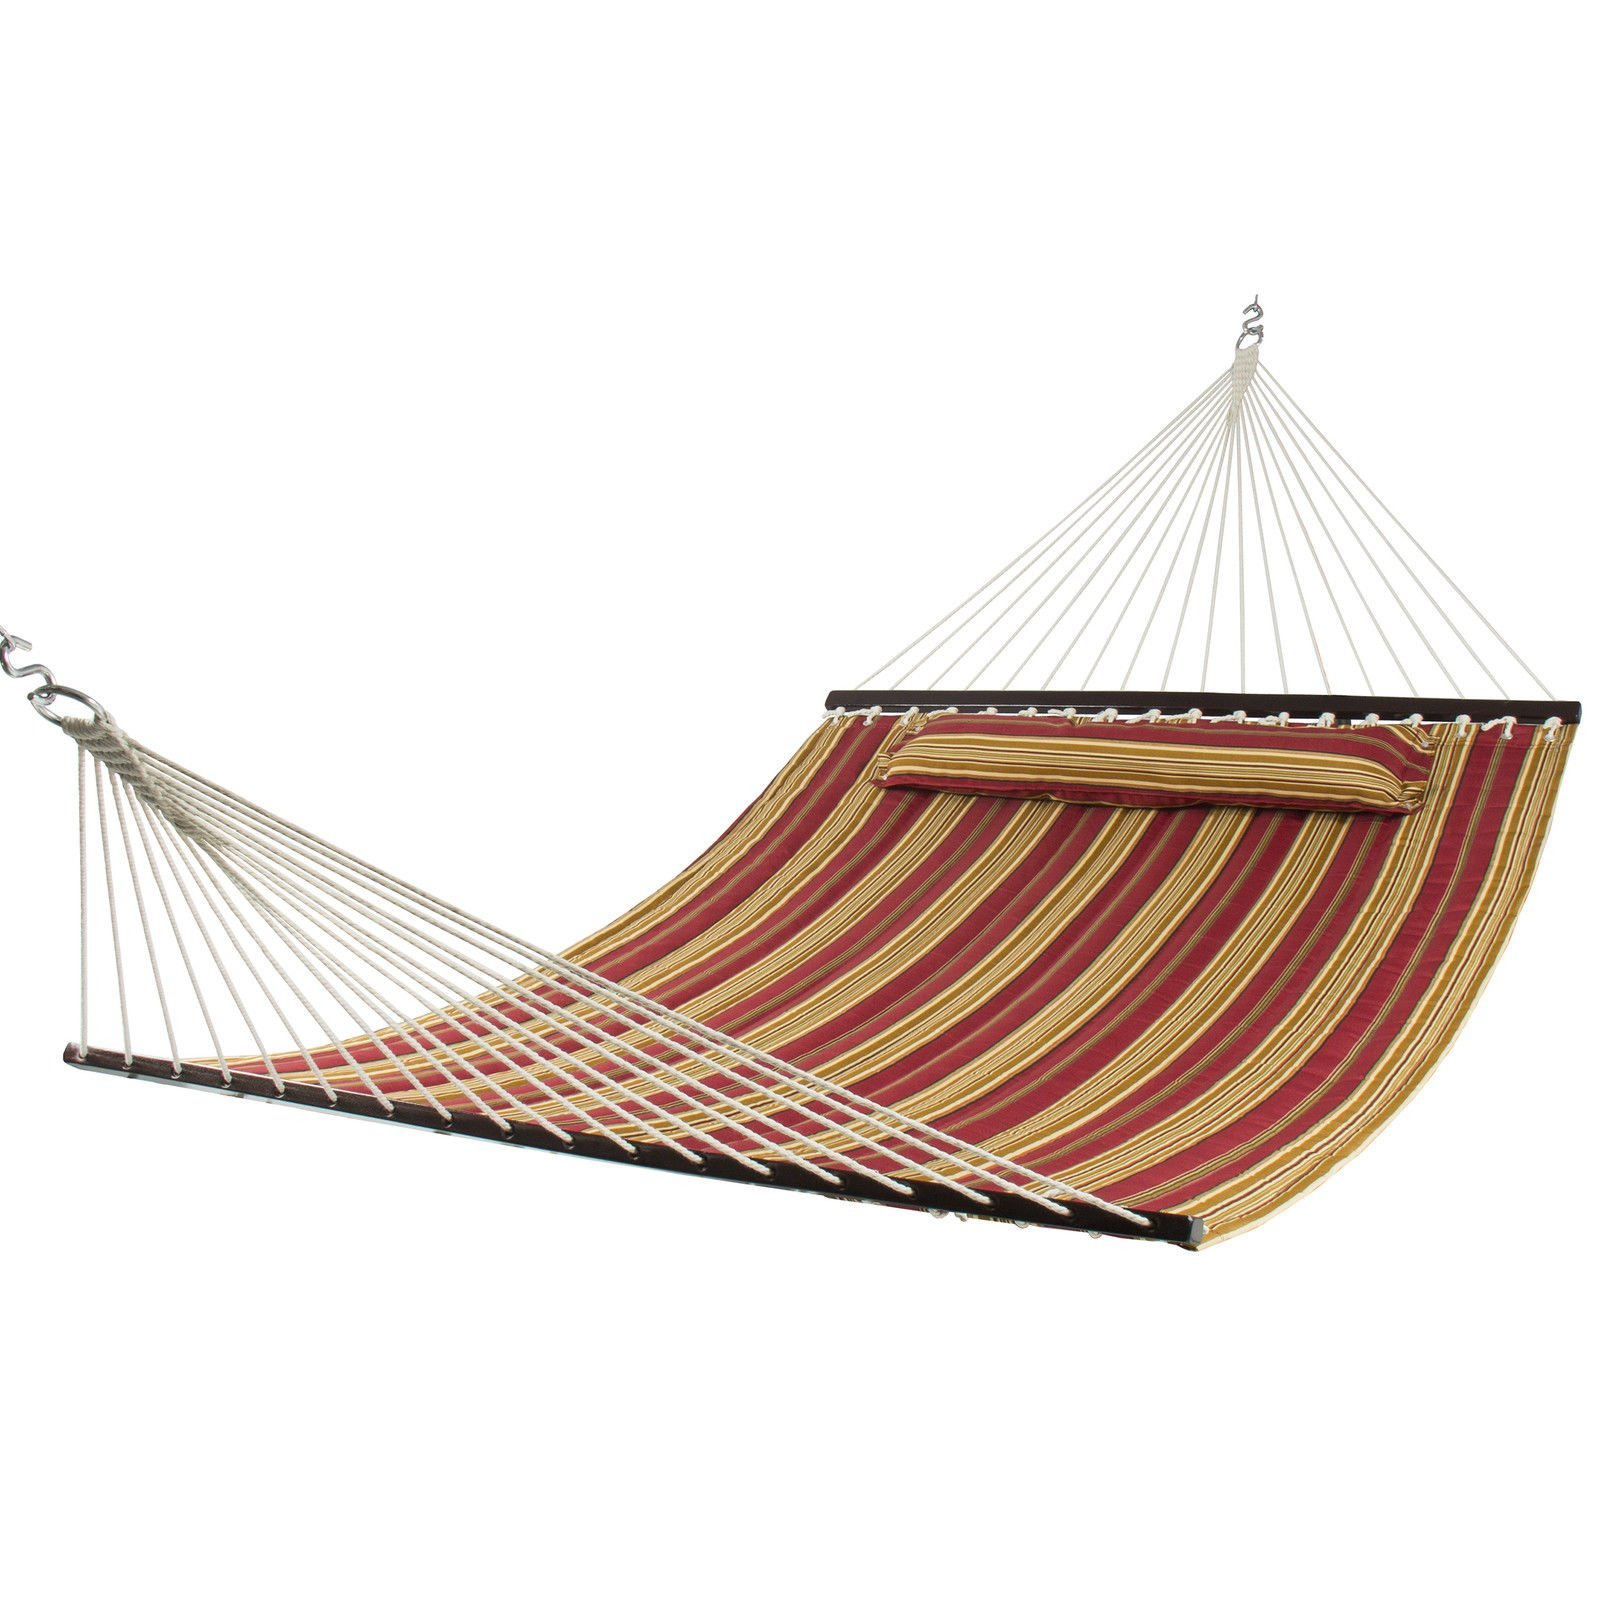 Hammock Quilted Fabric w/ Pillow Double Size Spreader Bar Heavy Duty Stylish by CS_SHOP